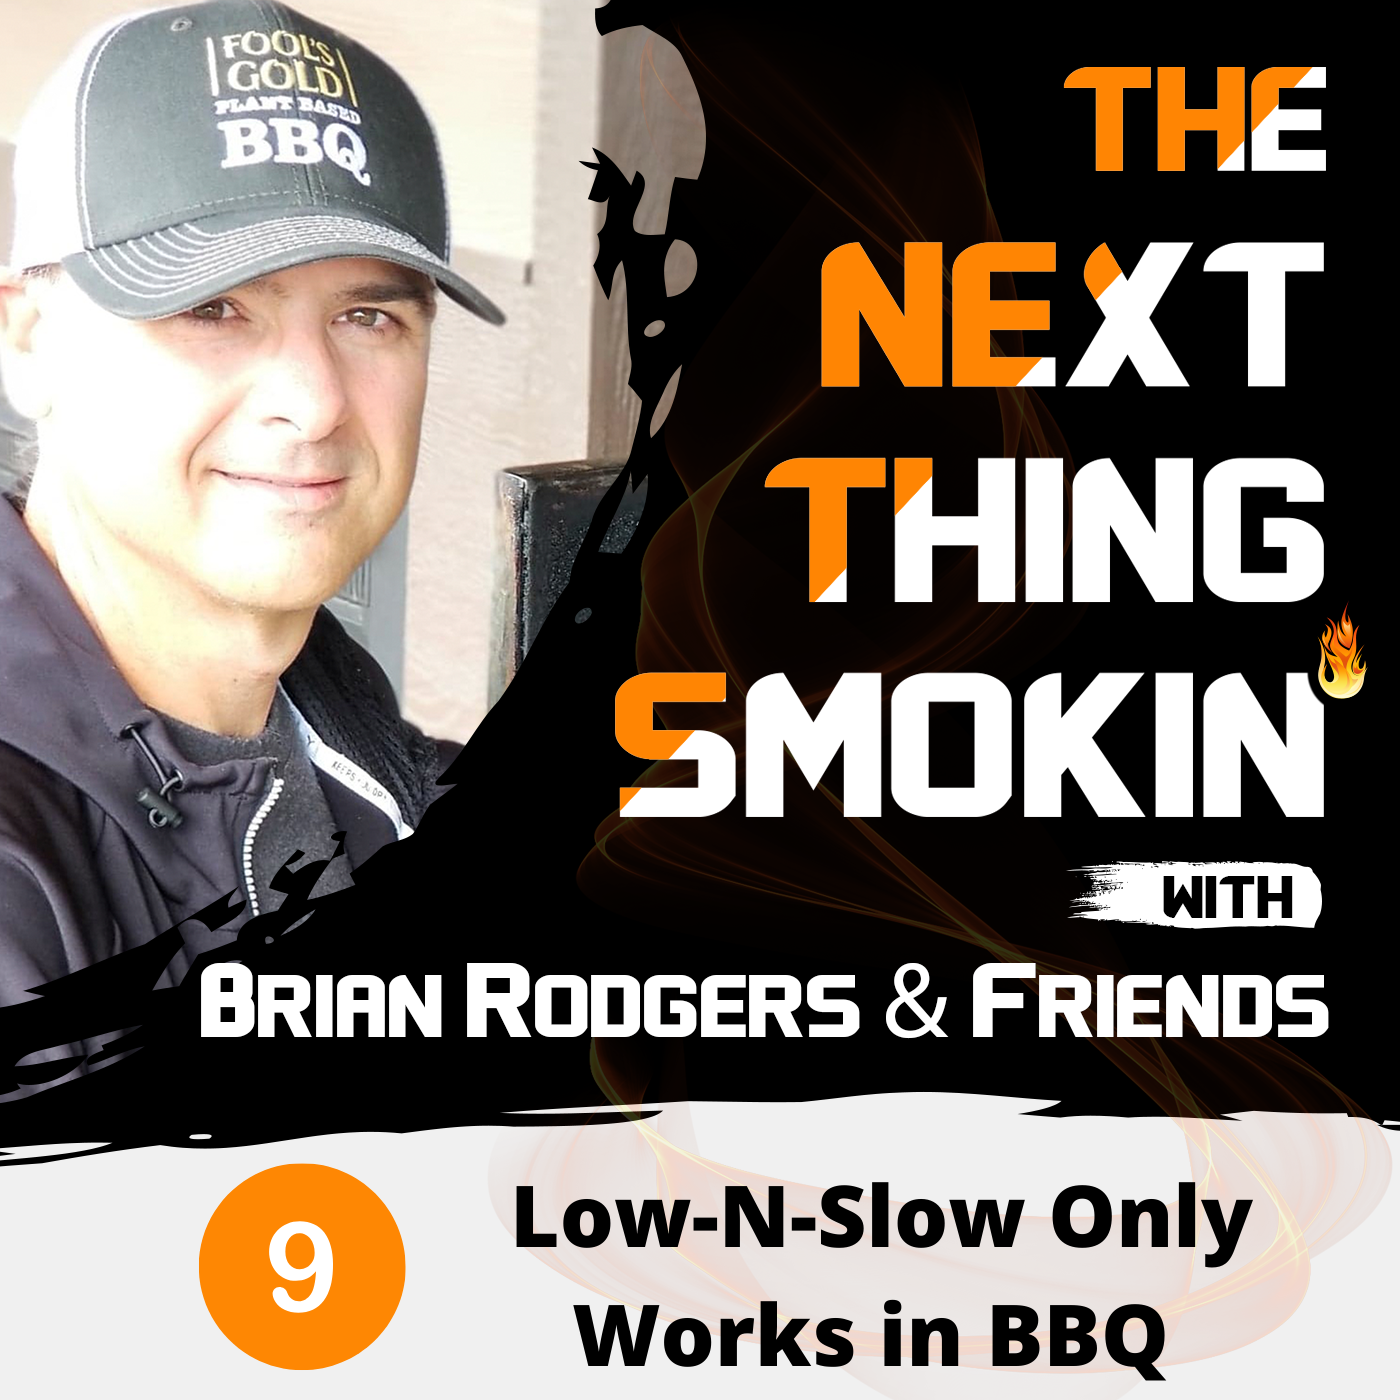 Low-N-Slow Only Works in BBQ